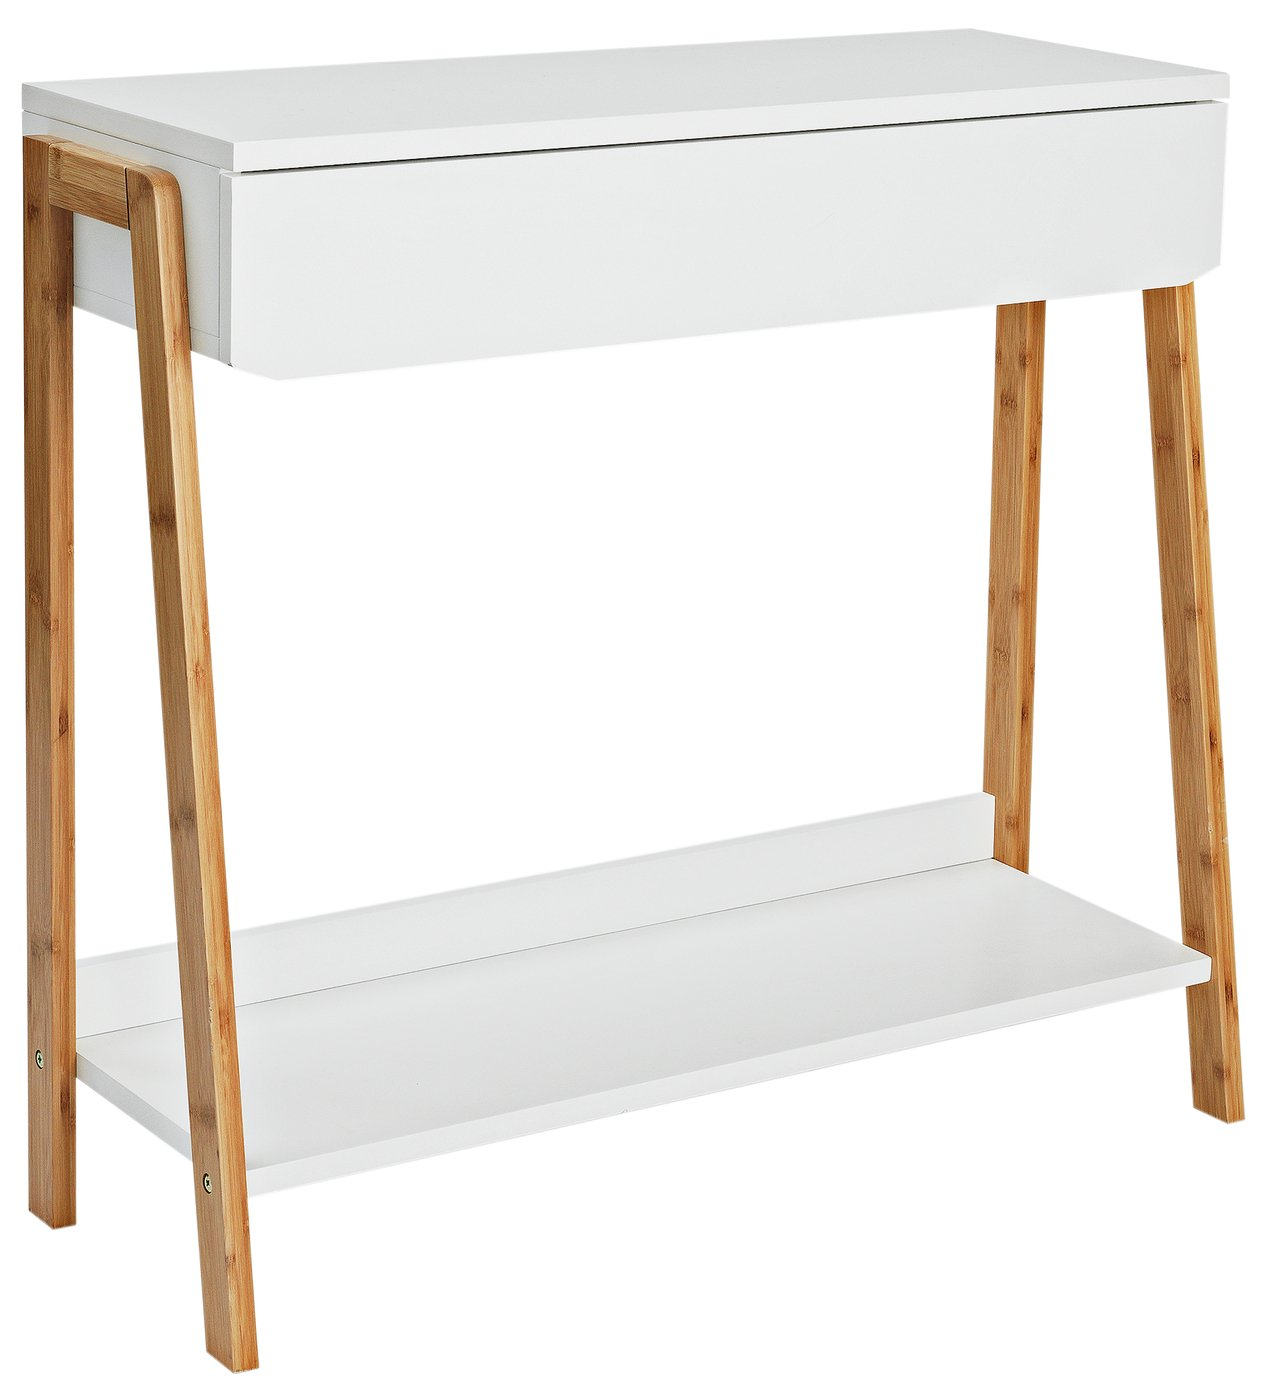 small console table. Collection Belvoir Console Table - Bamboo And White Small